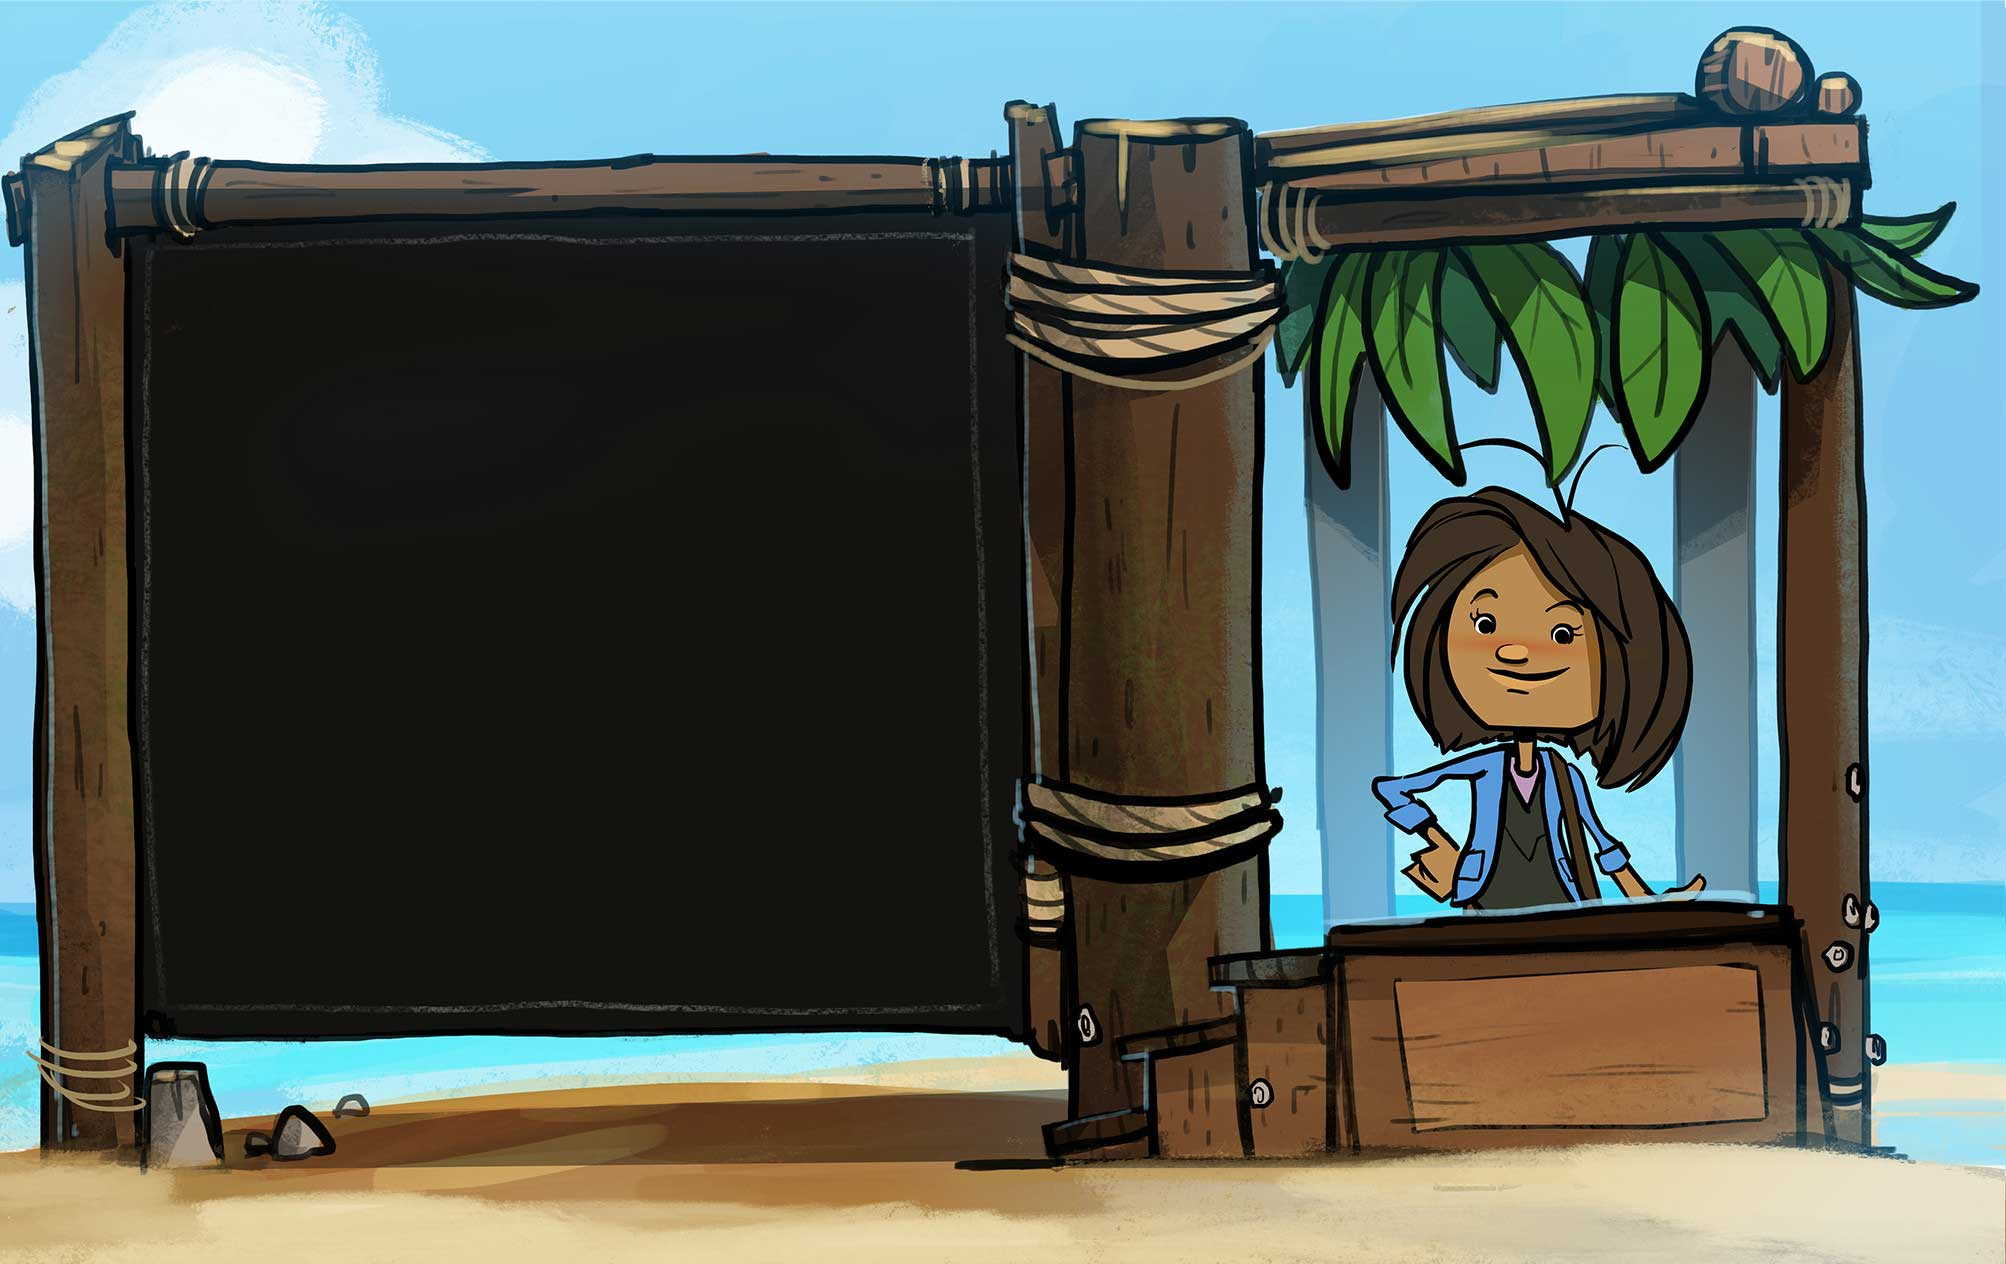 Captain sitting in a booth on the beach ready to tell you about goal setting.